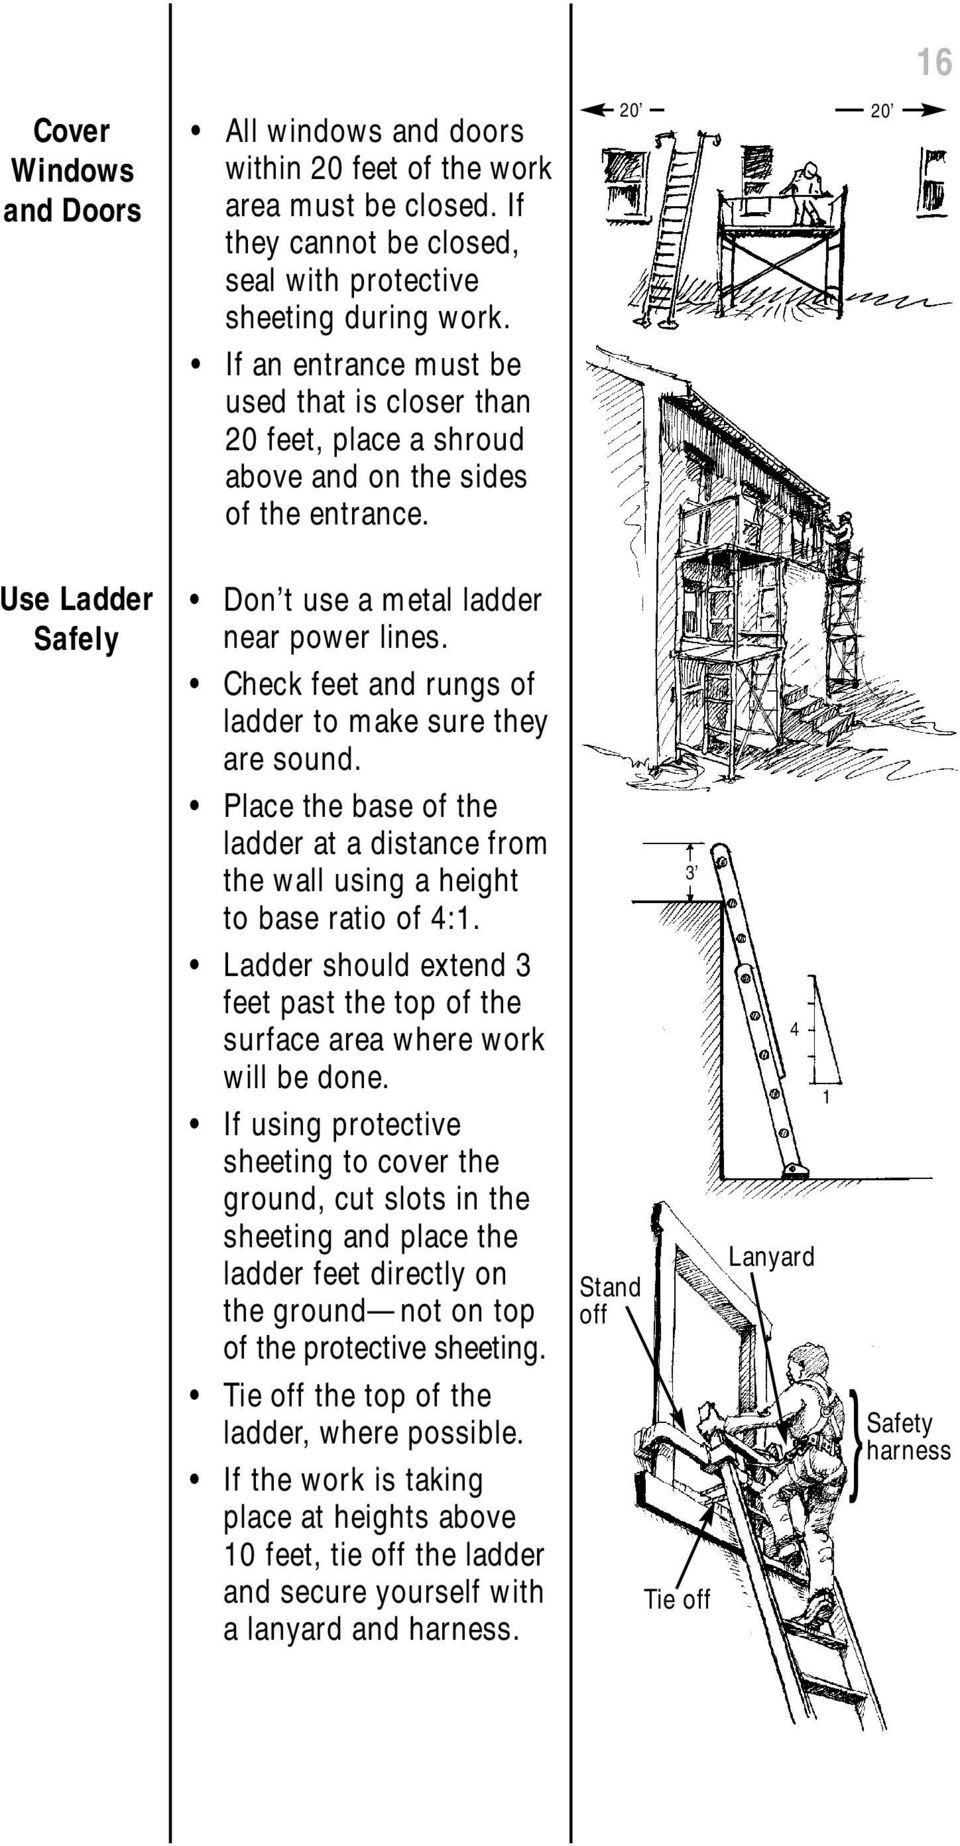 Check feet and rungs of ladder to make sure they are sound. Place the base of the ladder at a distance from the wall using a height to base ratio of 4:1.